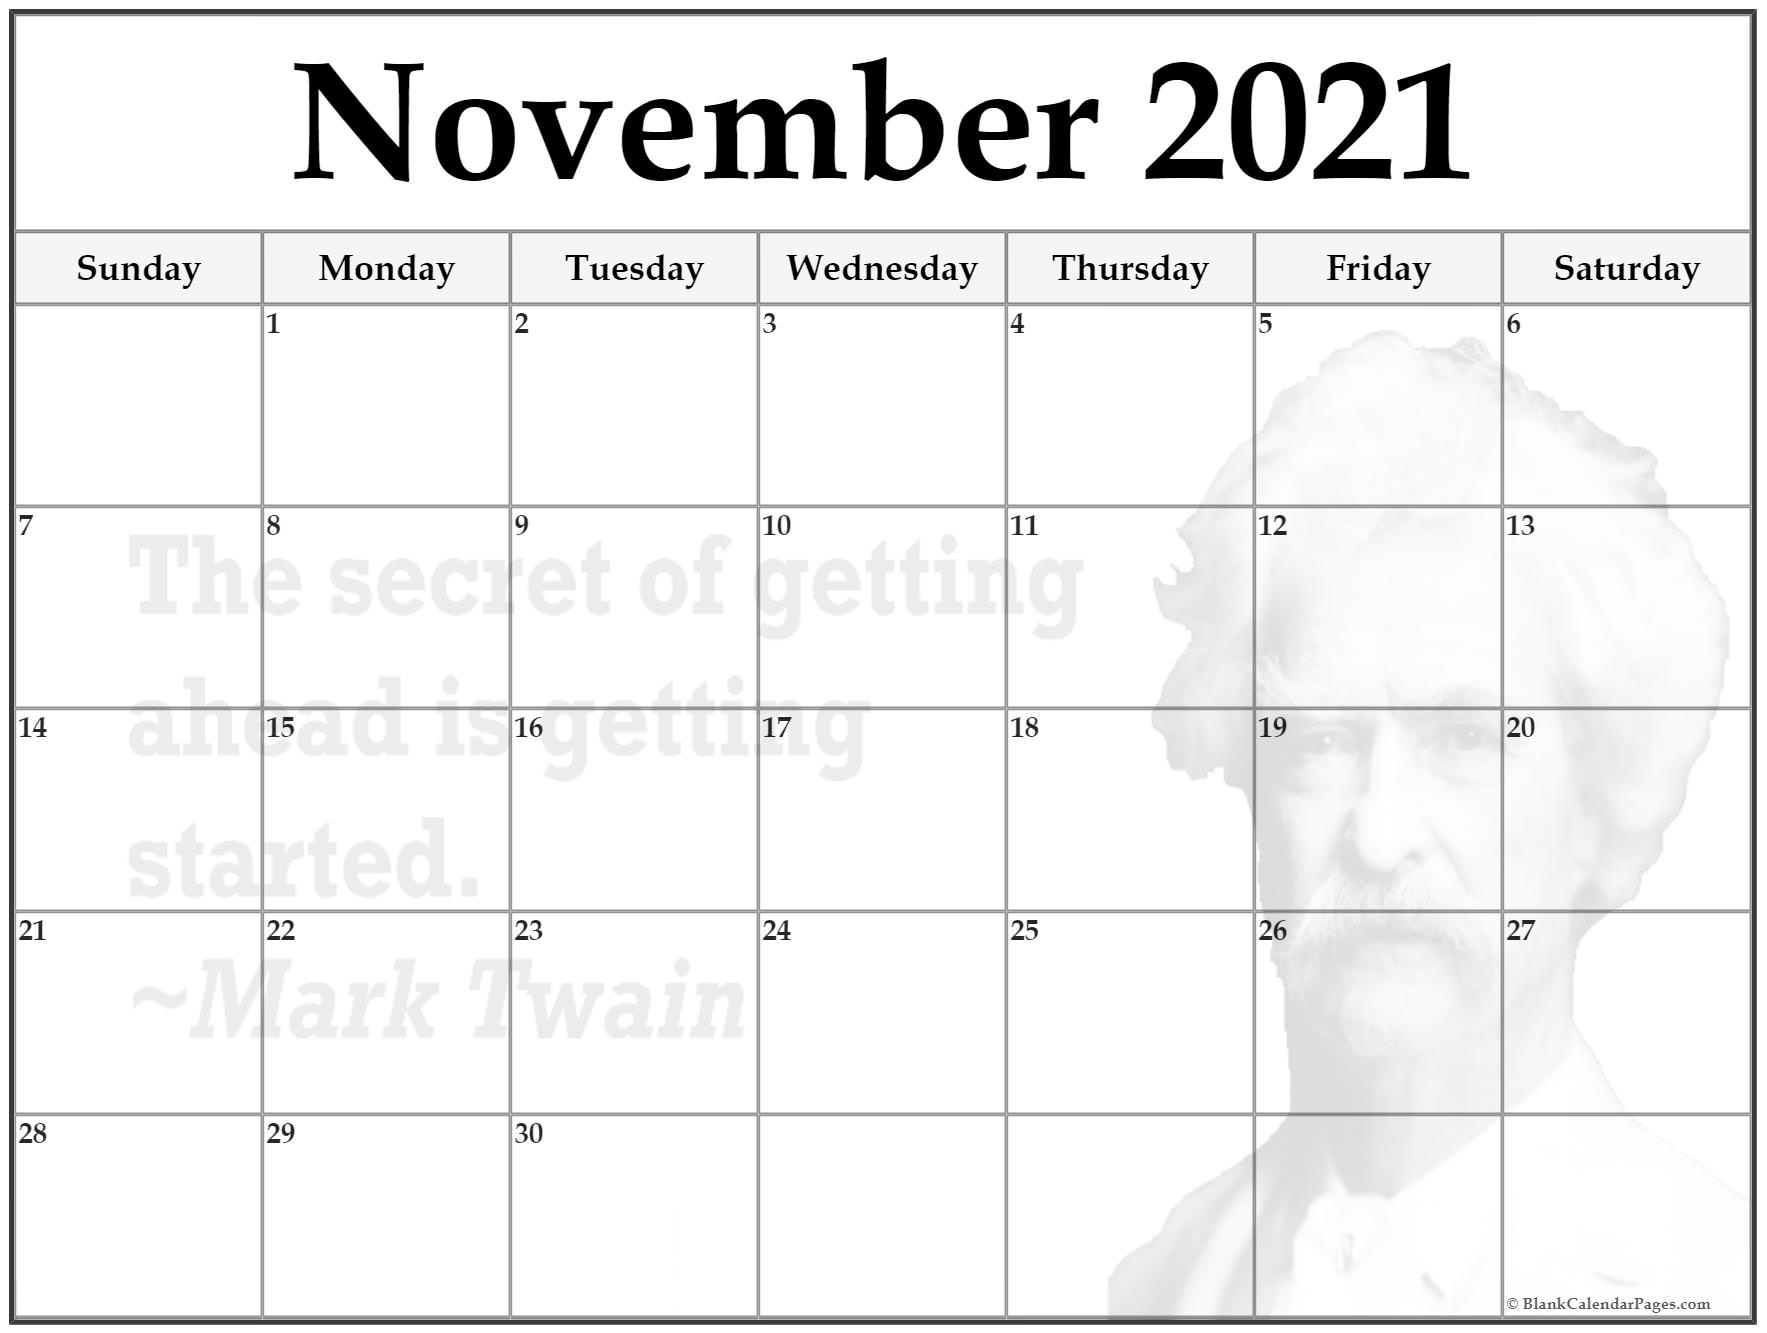 November 2020 printable quote calendar template. The secret of getting ahead is getting started. ~Mark Twain